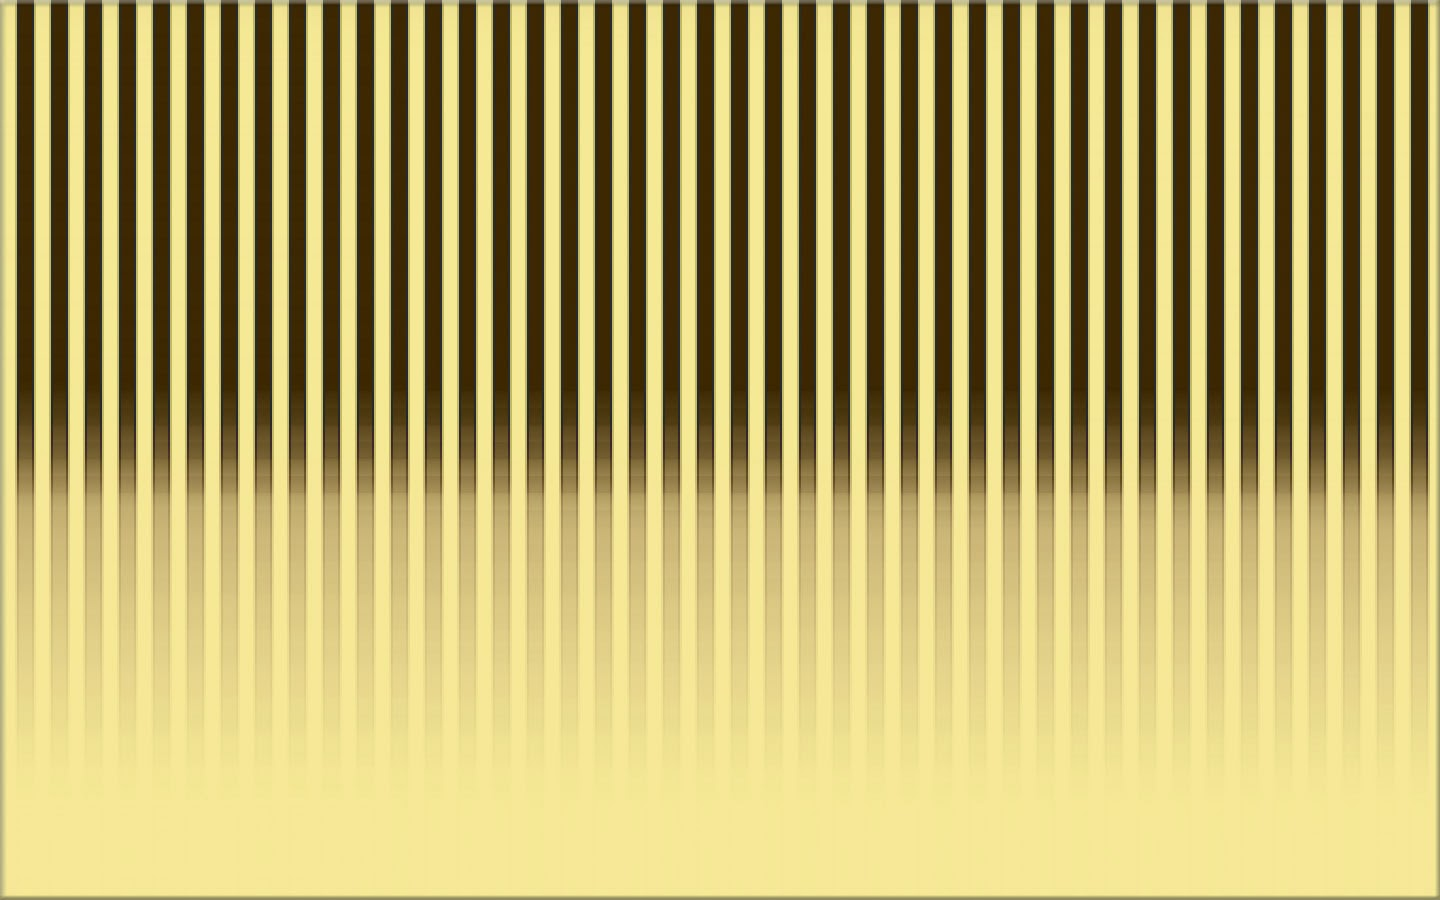 Striped Wallpaper  Wallpaper with Stripes Designs